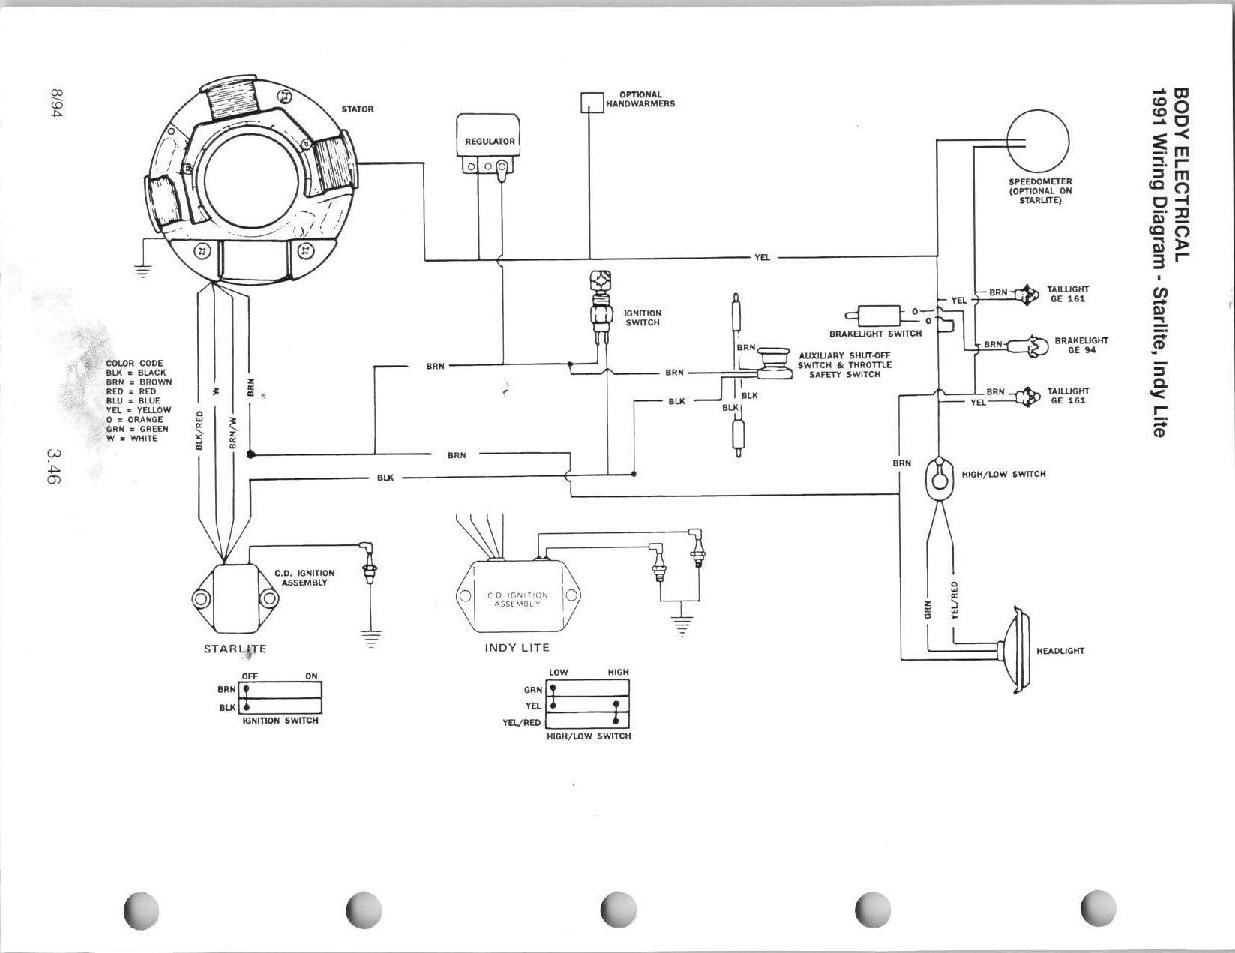 hight resolution of polaris indy 500 wiring diagram wiring diagram todays rh 10 3 9 1813weddingbarn com 2006 polaris sportsman 500 wiring diagram polaris sportsman wiring